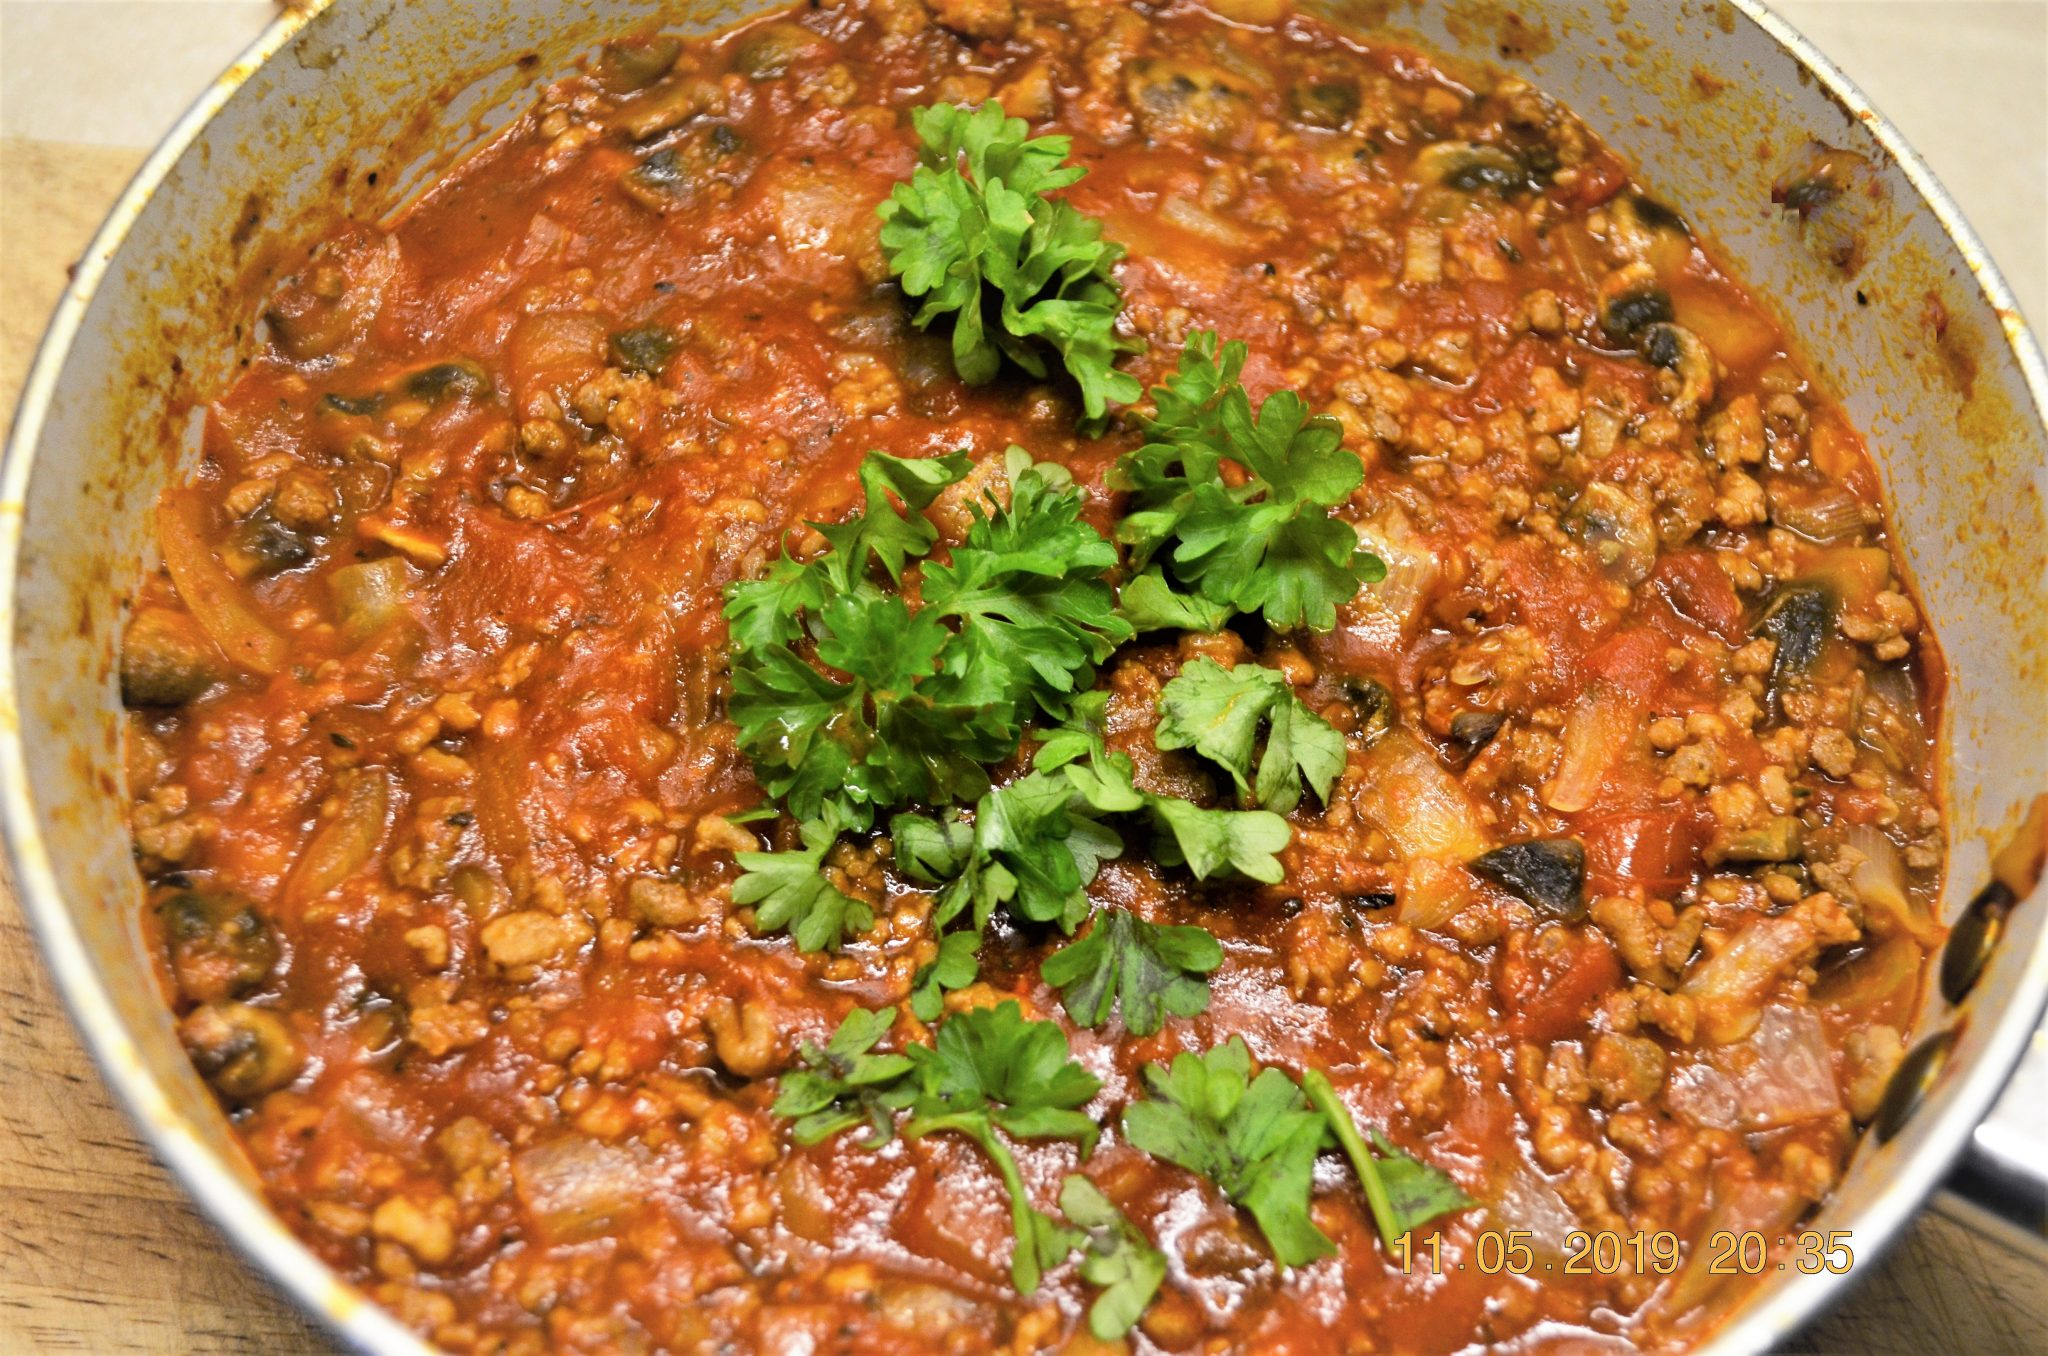 A pan of chilli bolognese sauce.